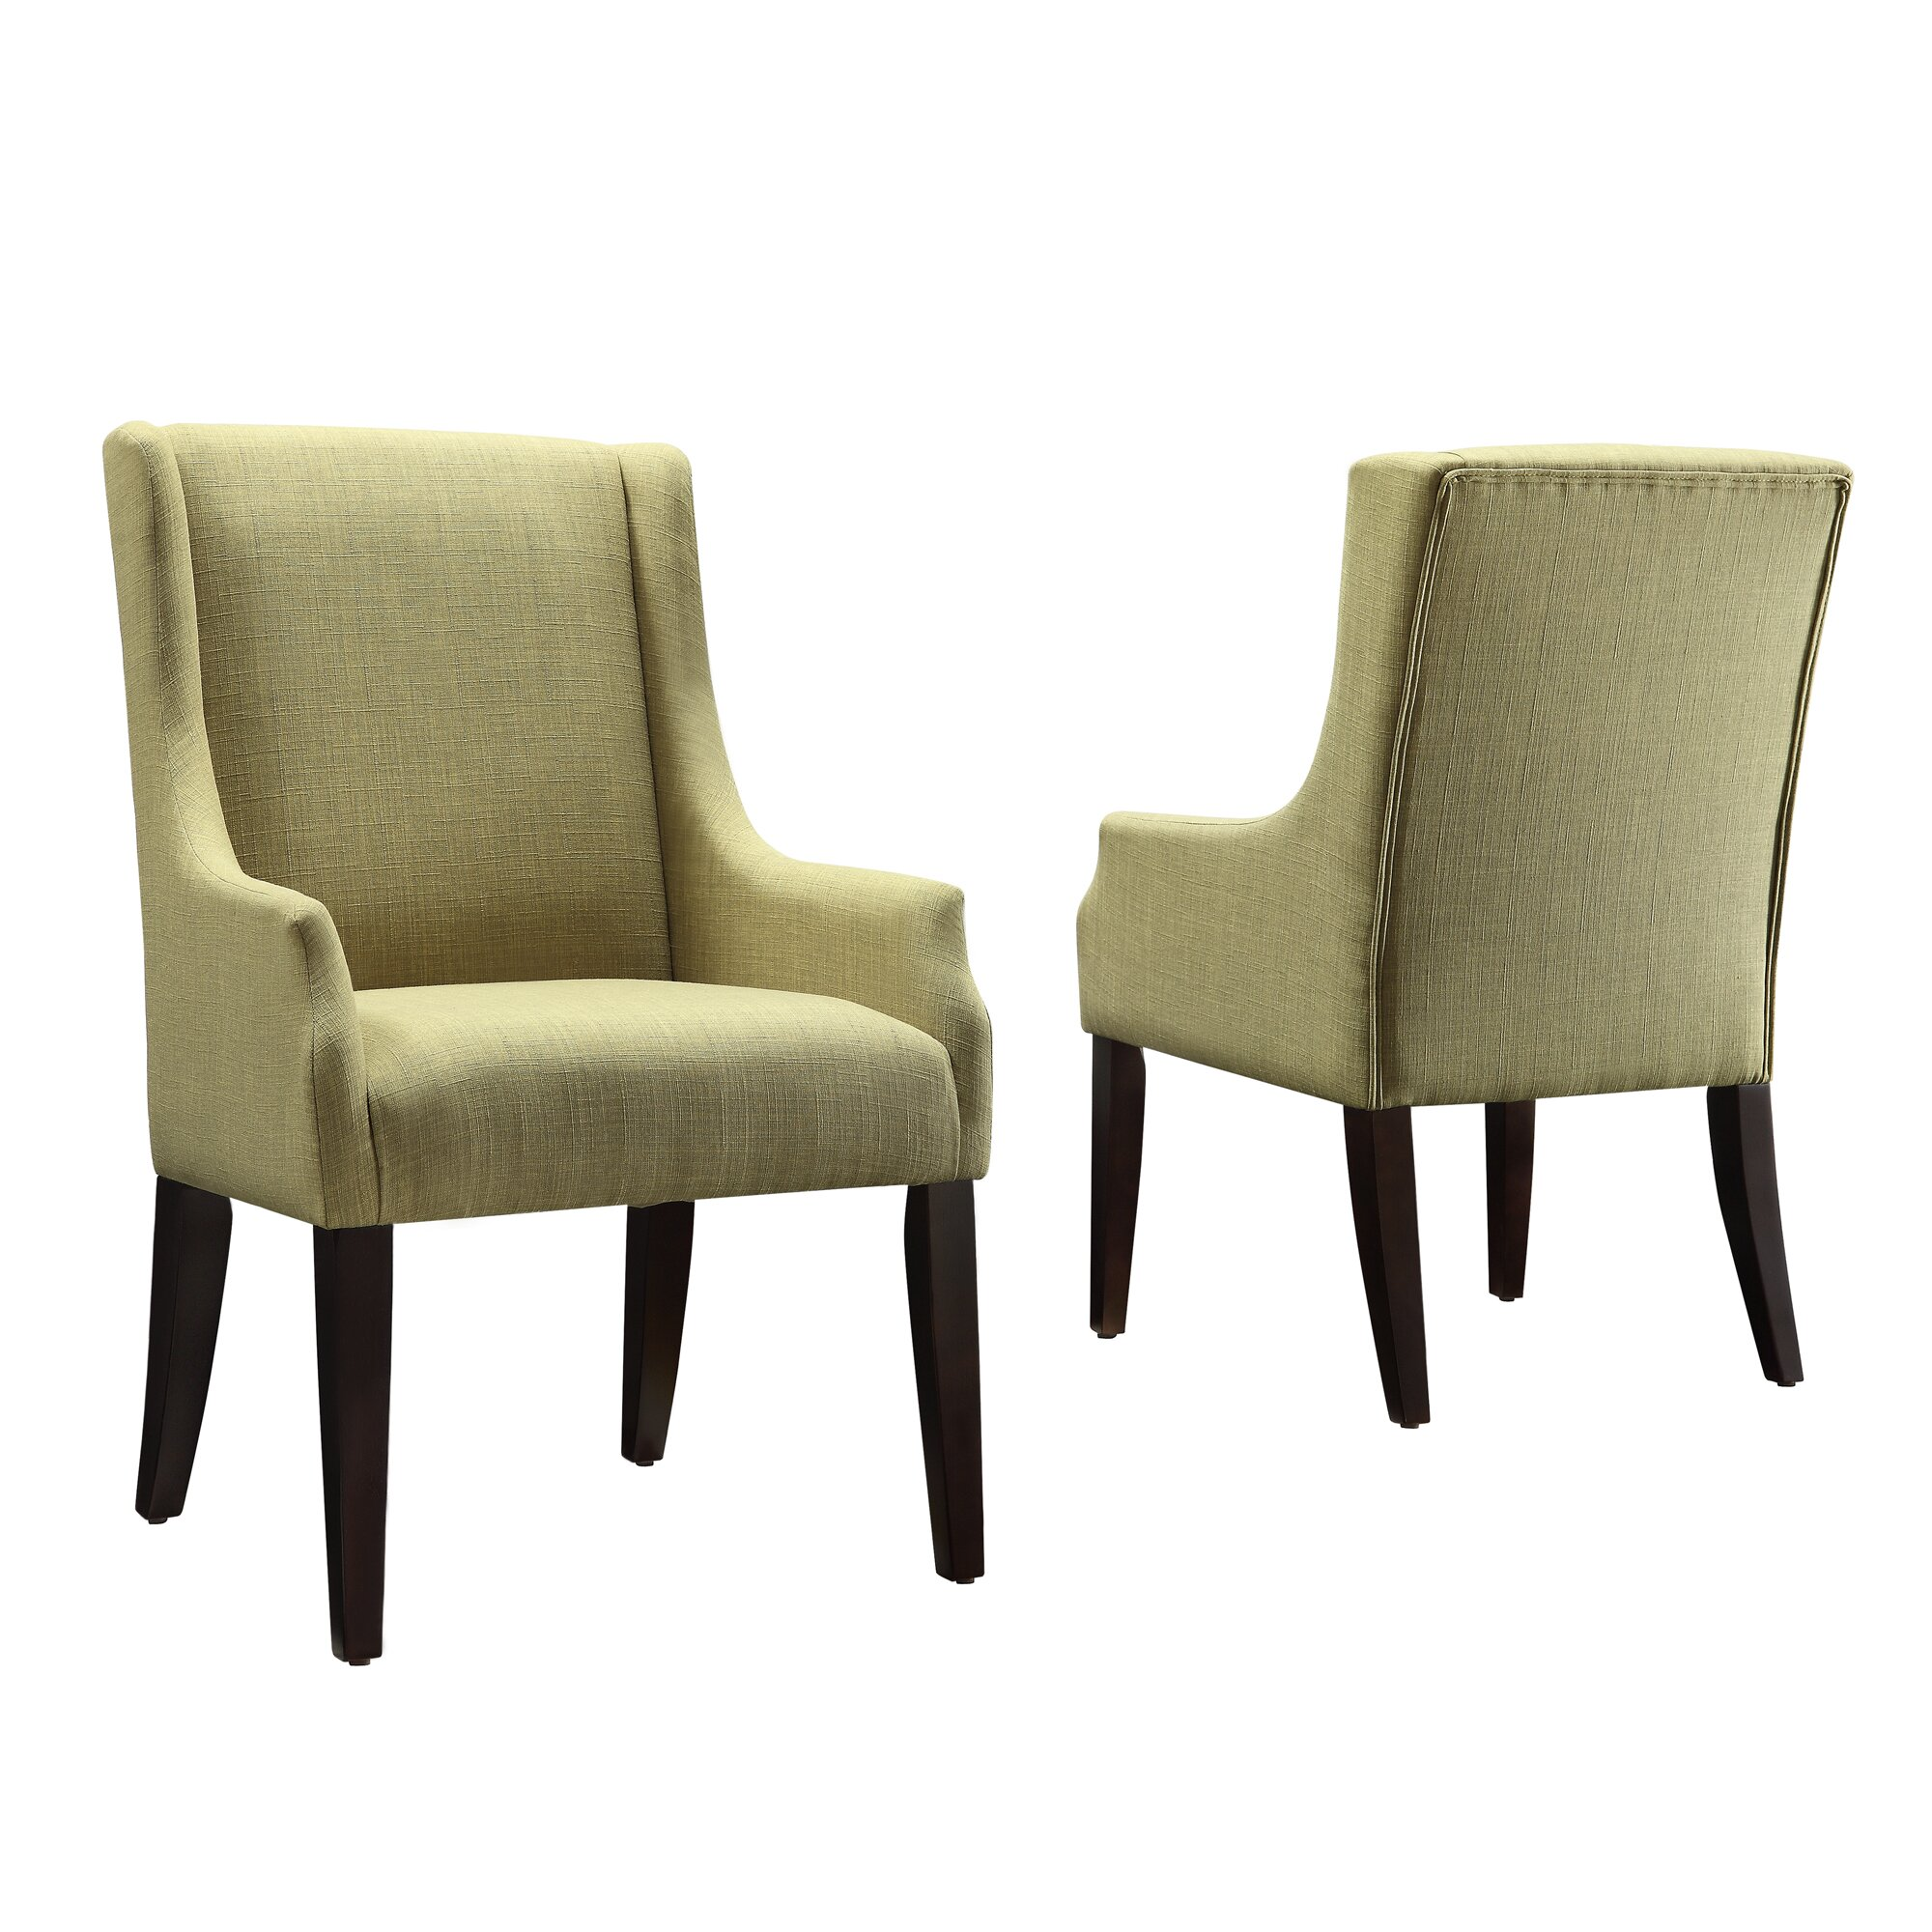 Darby Home Co Tinley Linen Sloped Arm Chair & Reviews | Wayfair